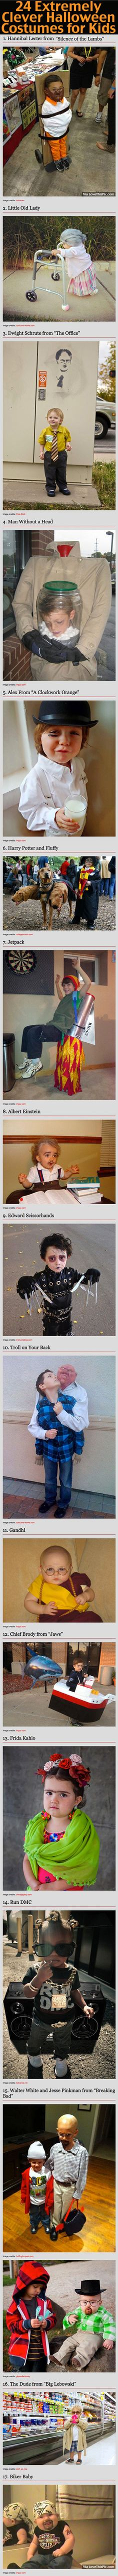 24 Extremely Clever Halloween Costumes For Kids